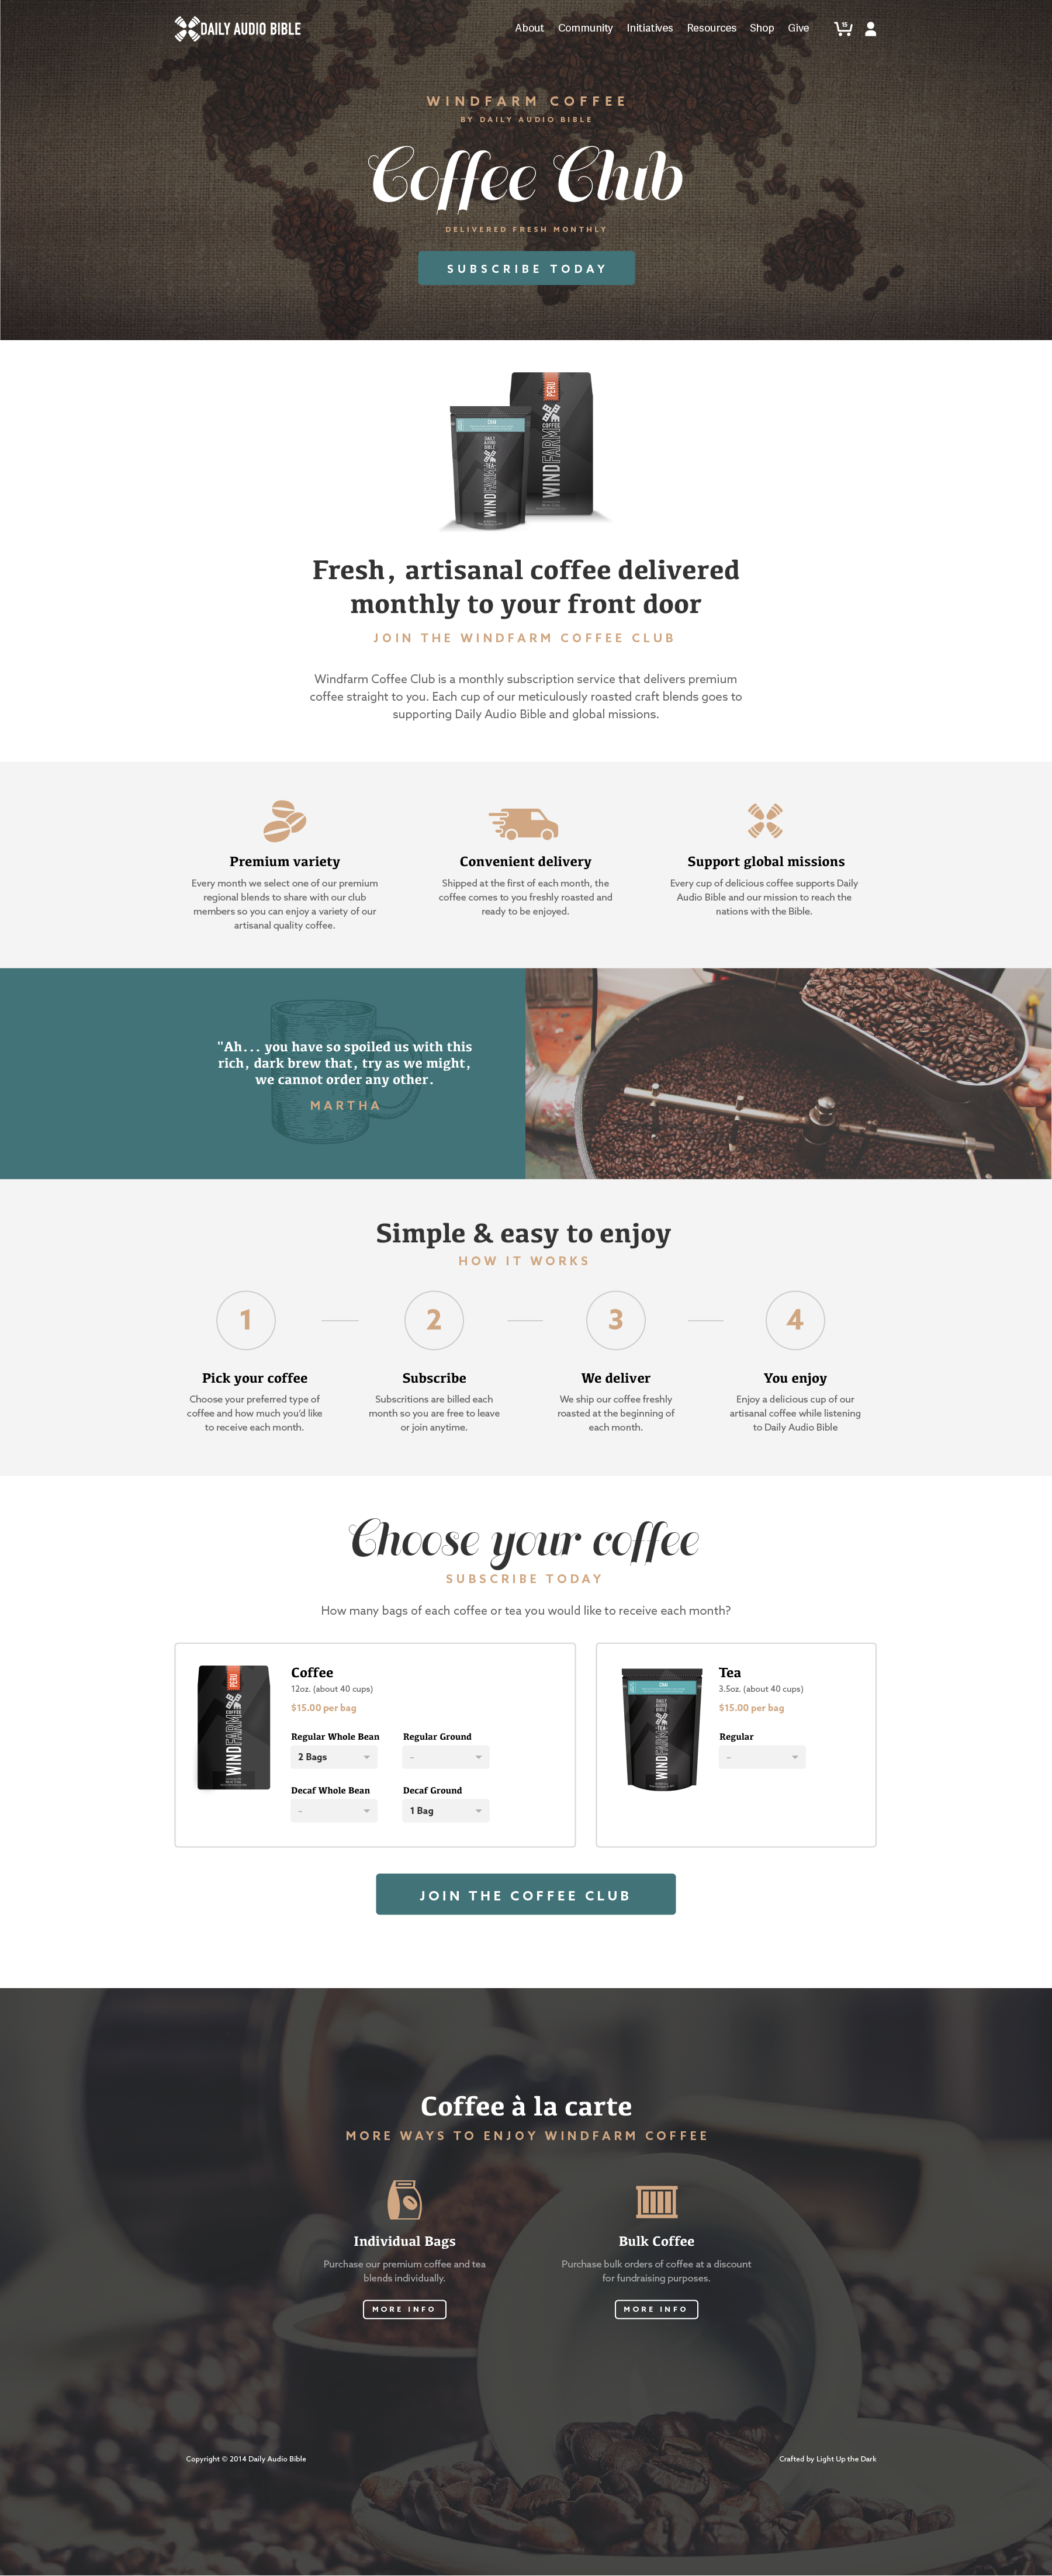 This Is A Mockup Our Kansas City Web Design Agency Did For A Nonprofit Who Started A Coffee Subscription Serv Web Design Tips Web Design Web Development Design